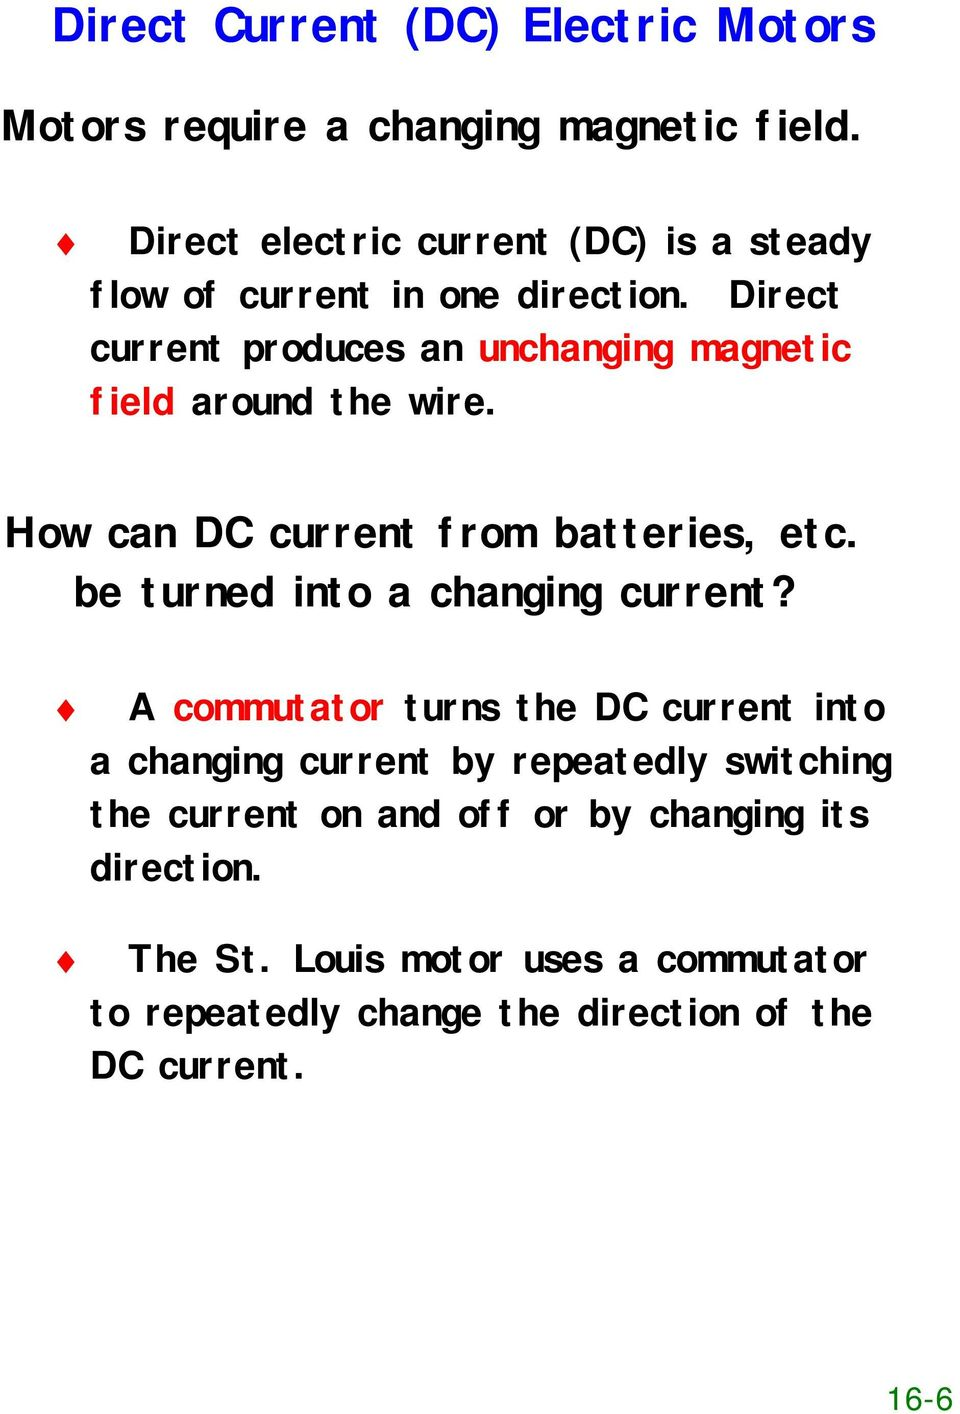 Direct current produces an unchanging magnetic field around the wire. How can DC current from batteries, etc.